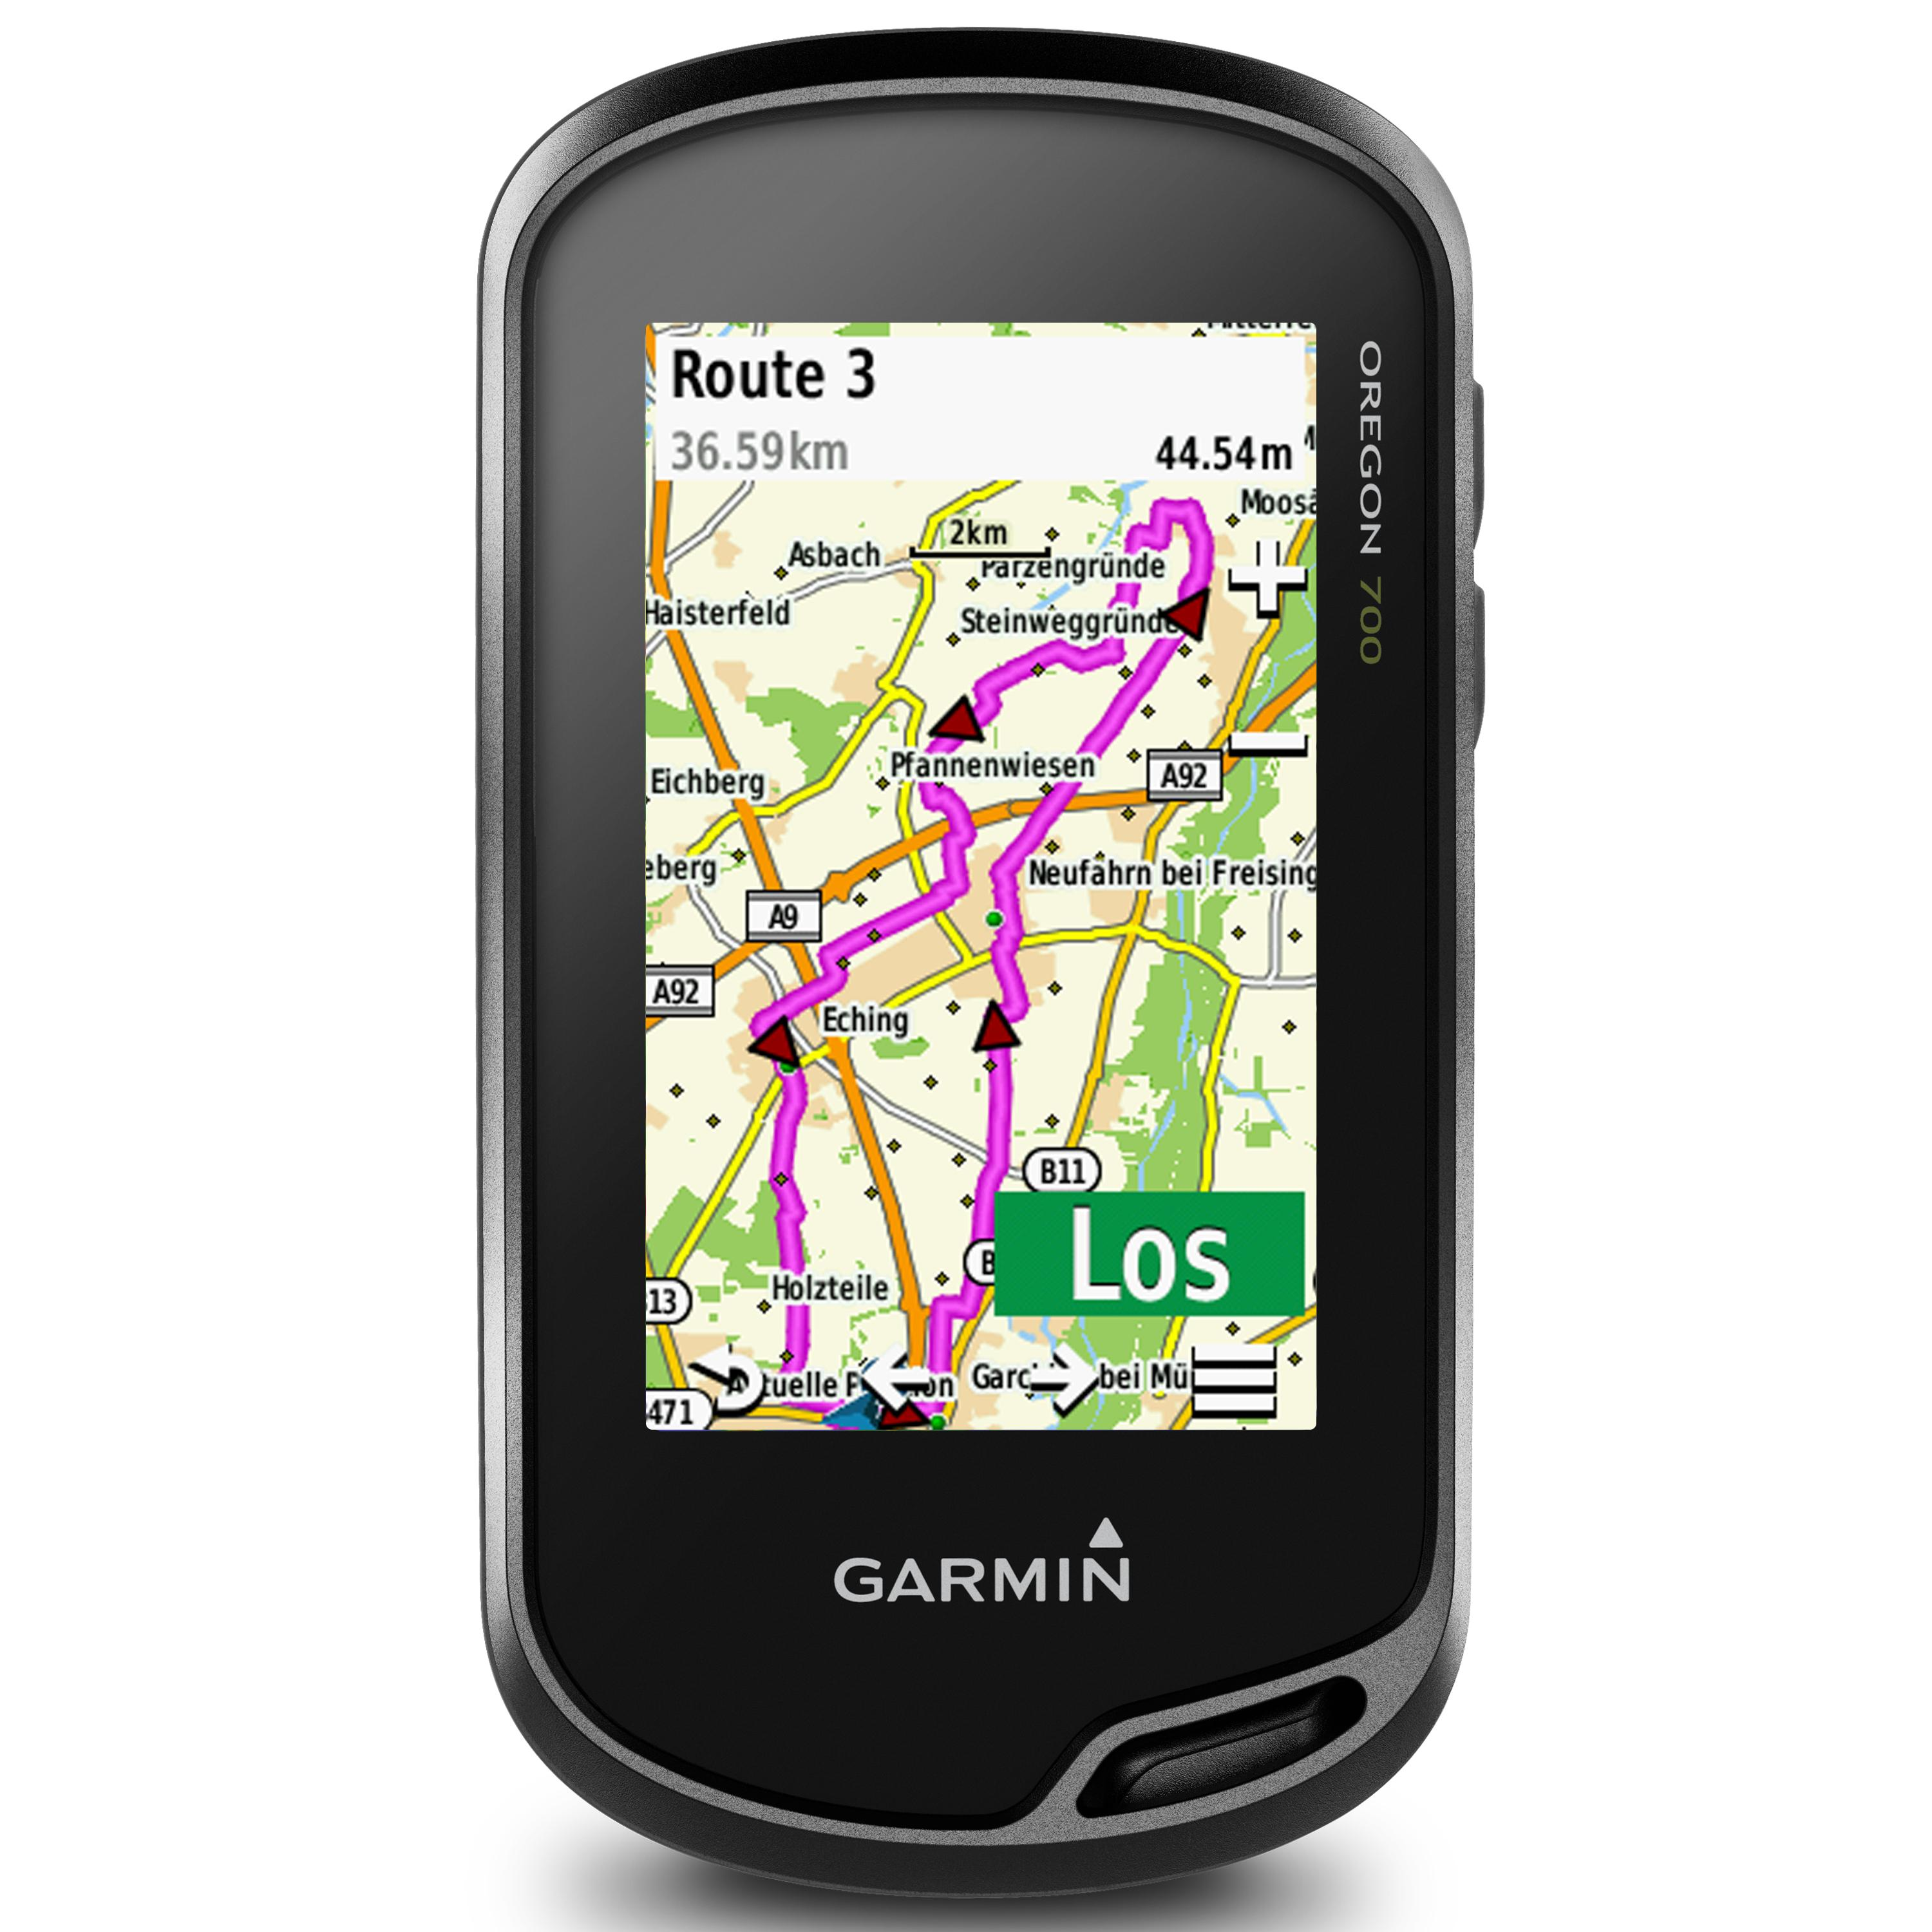 garmin oregon 700 gps handger t integriertes wlan. Black Bedroom Furniture Sets. Home Design Ideas